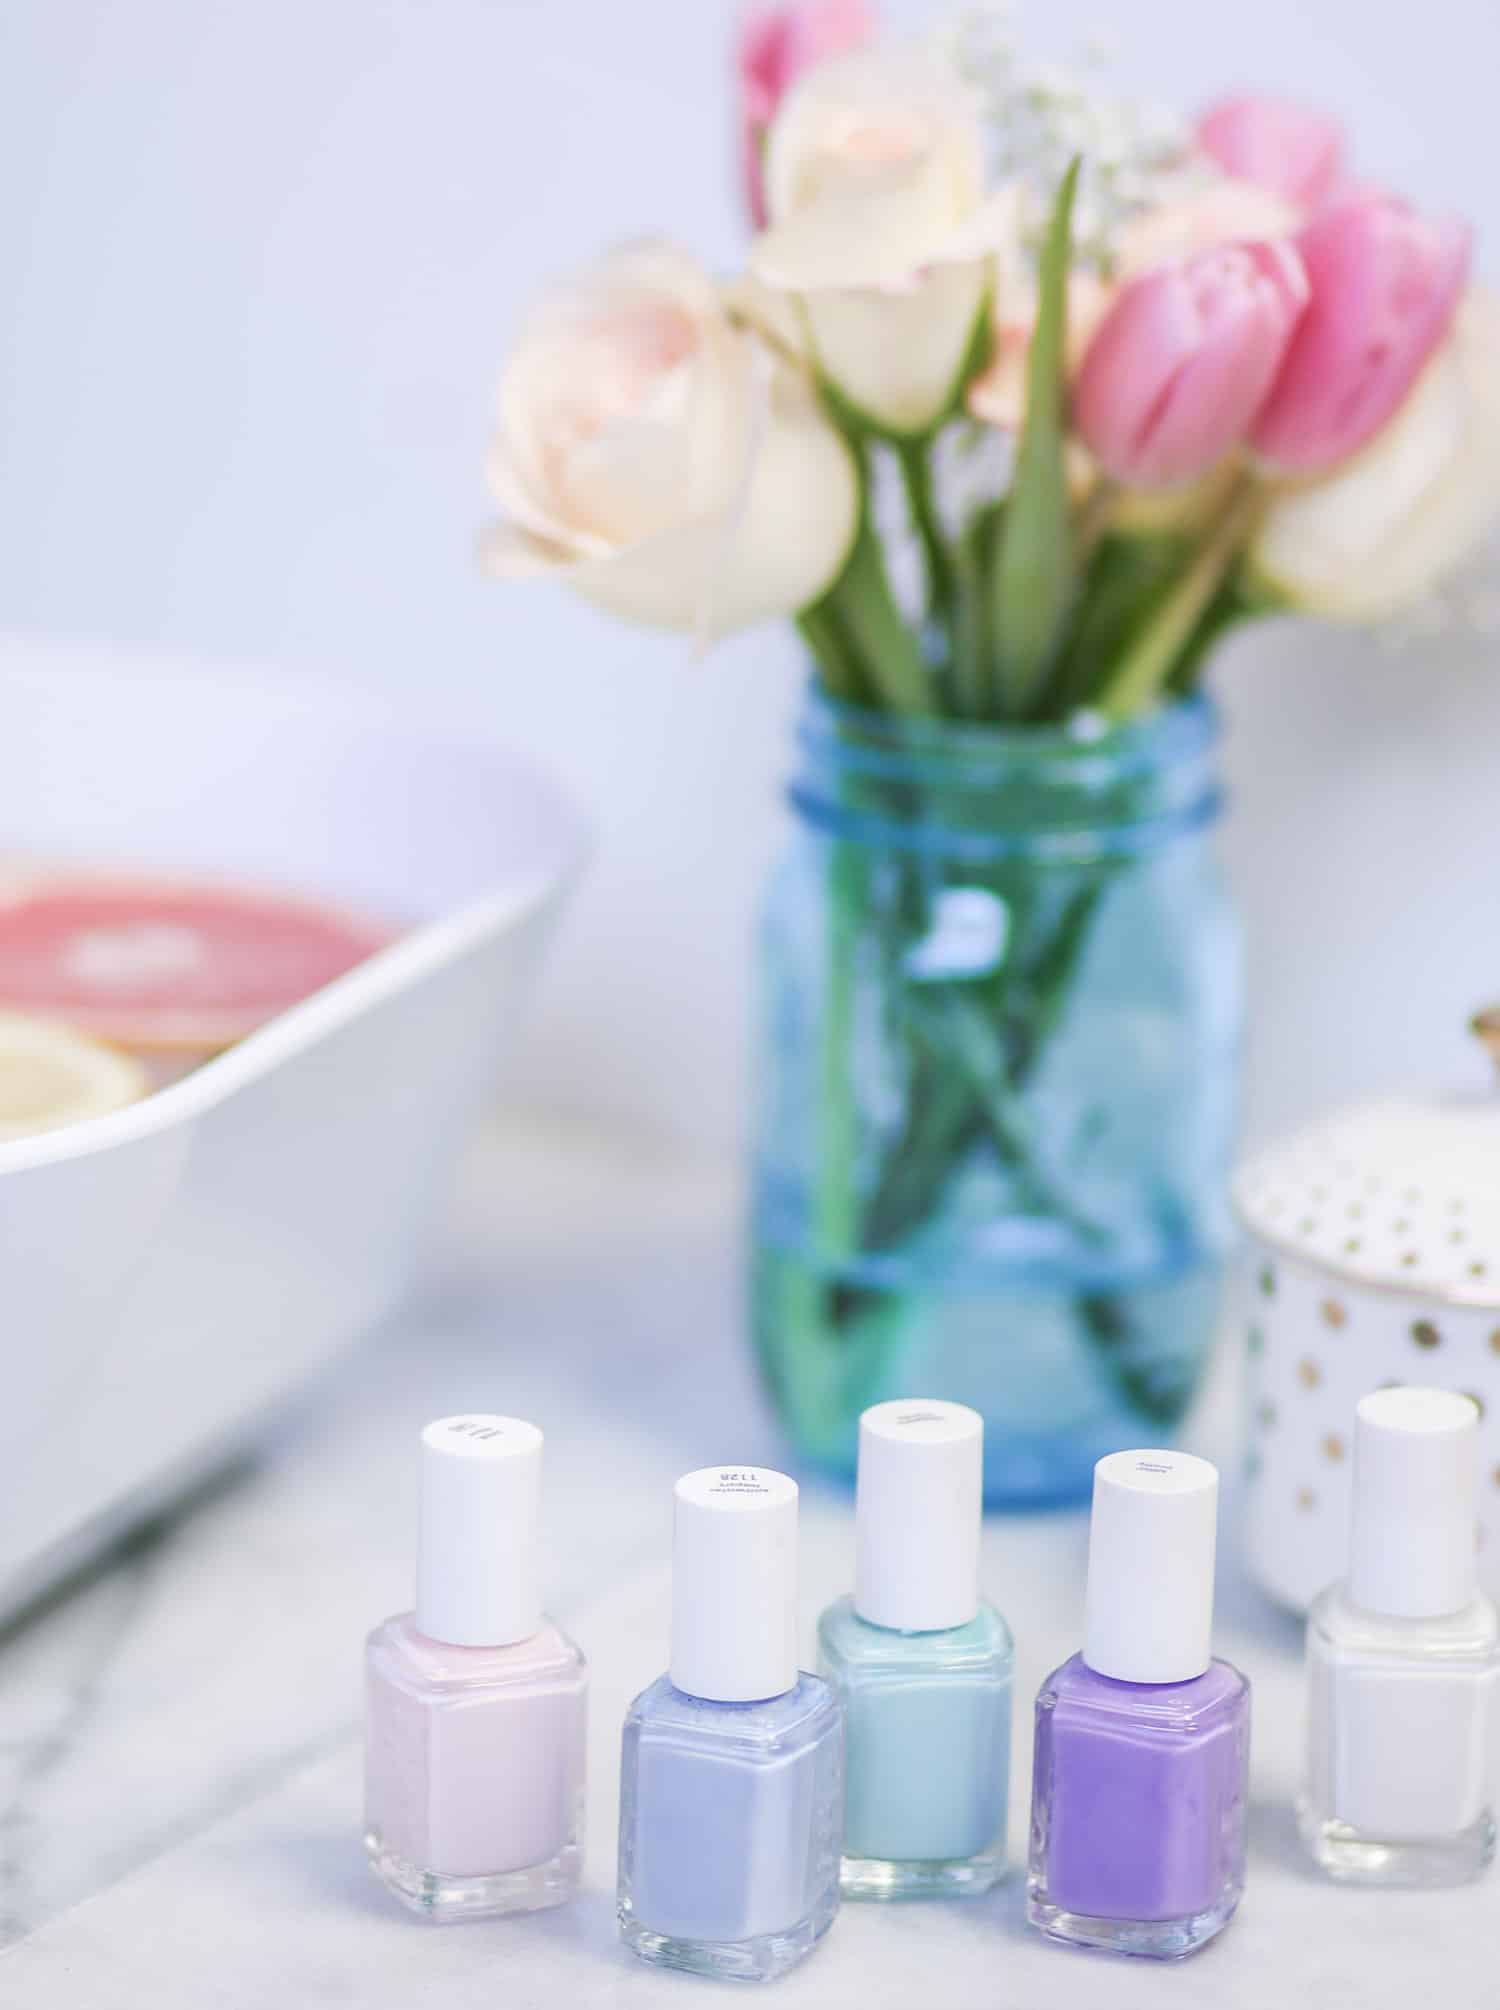 Diy mani pedi at home